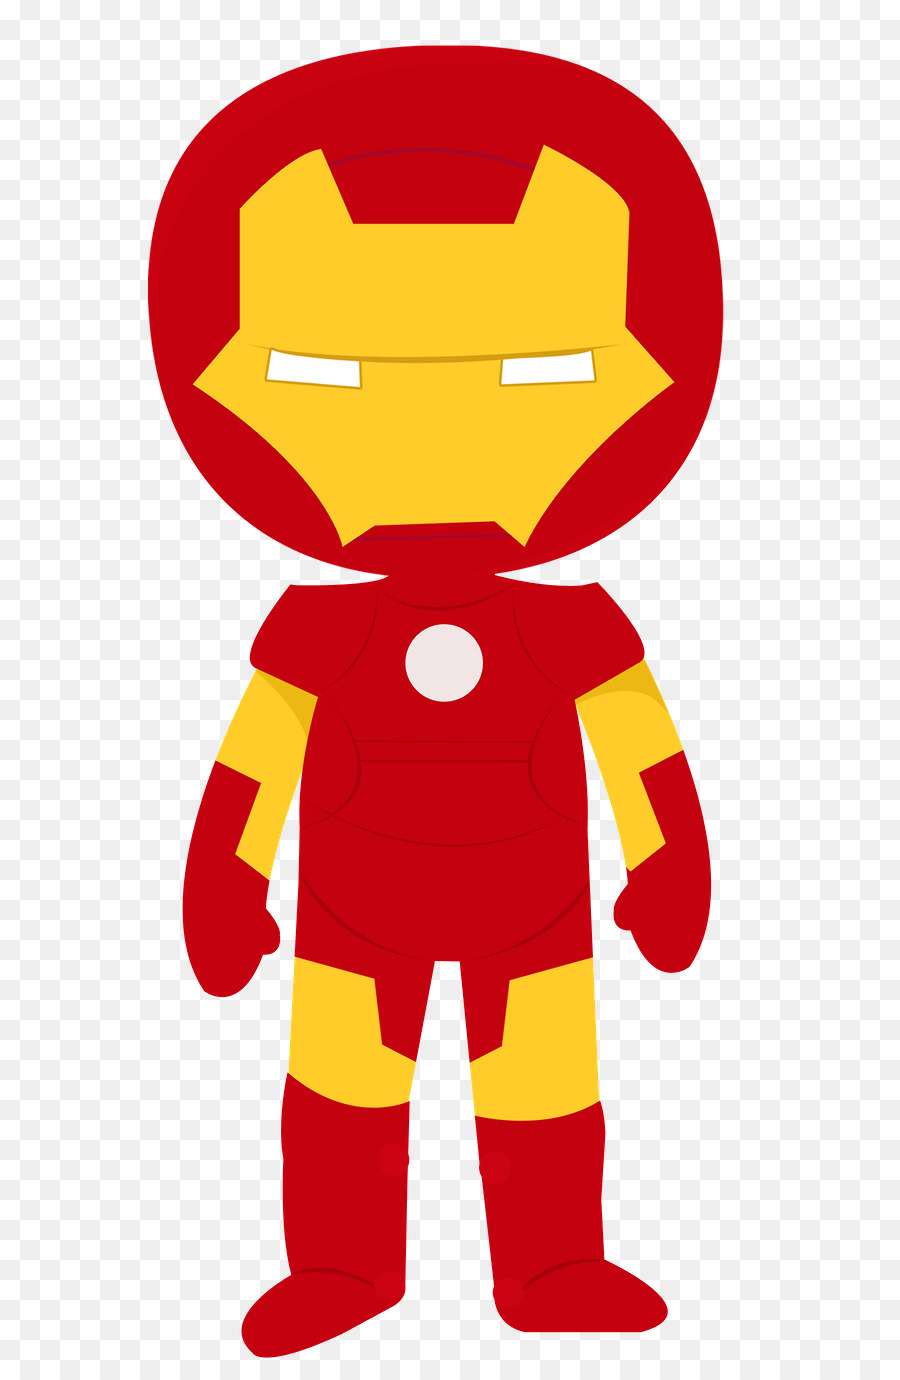 thor iron man superhero clip art iron spiderman png download 900 rh kisspng com iron man clipart images iron man clipart black and white